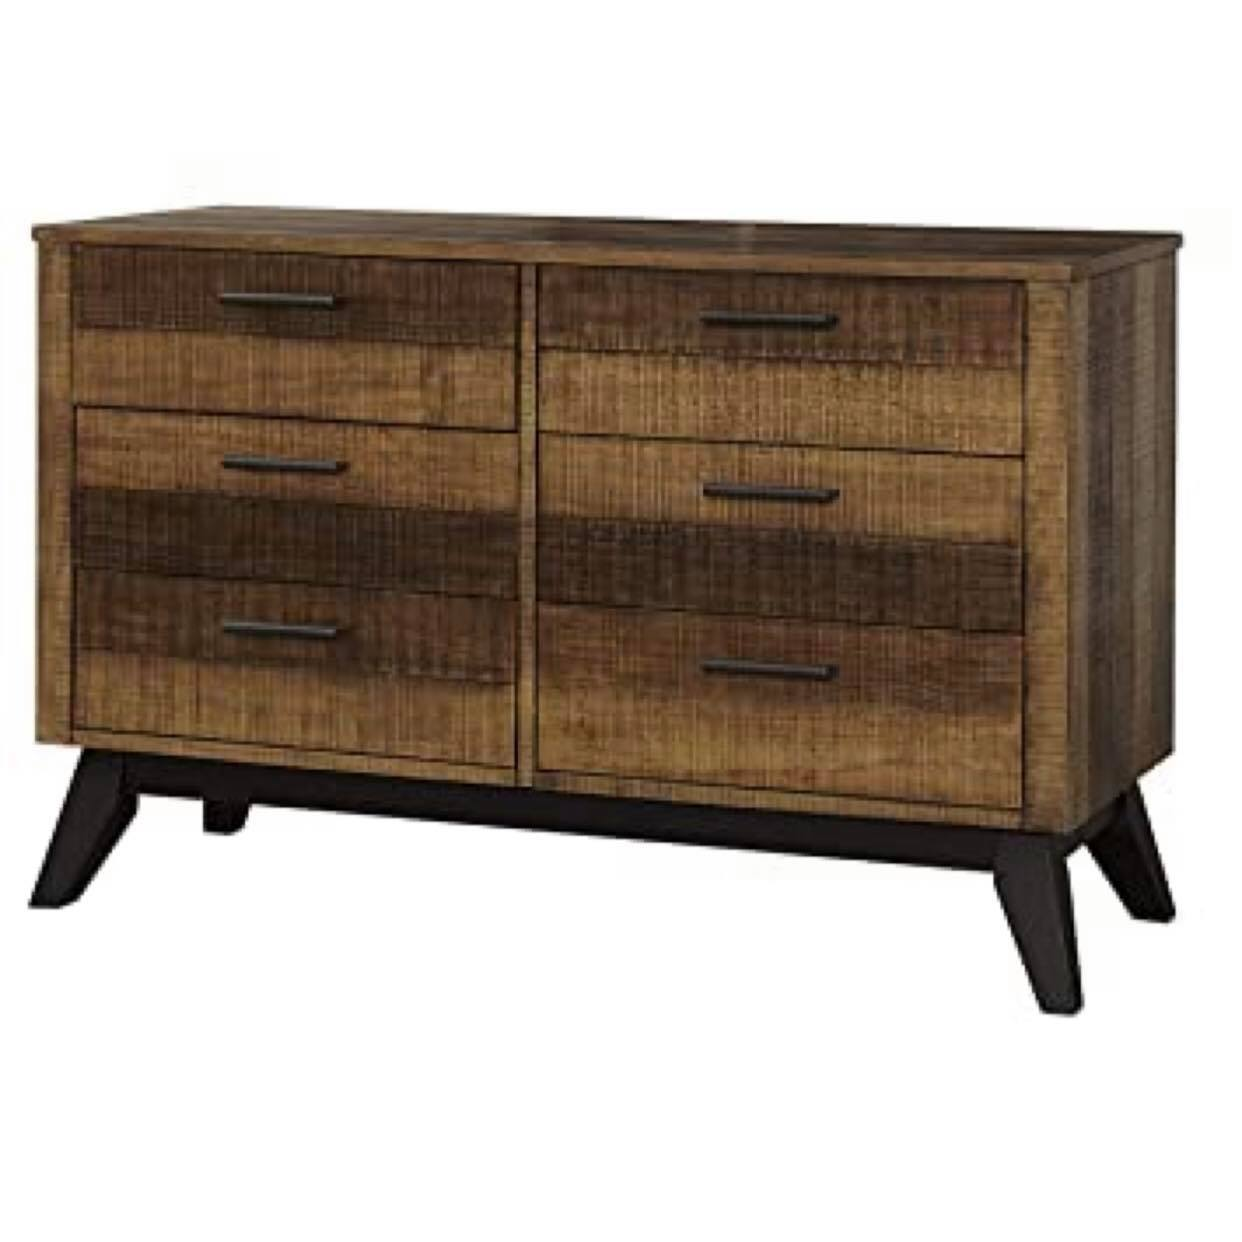 Westwood Urban Rustic Double Dresser - Brushed Wheat